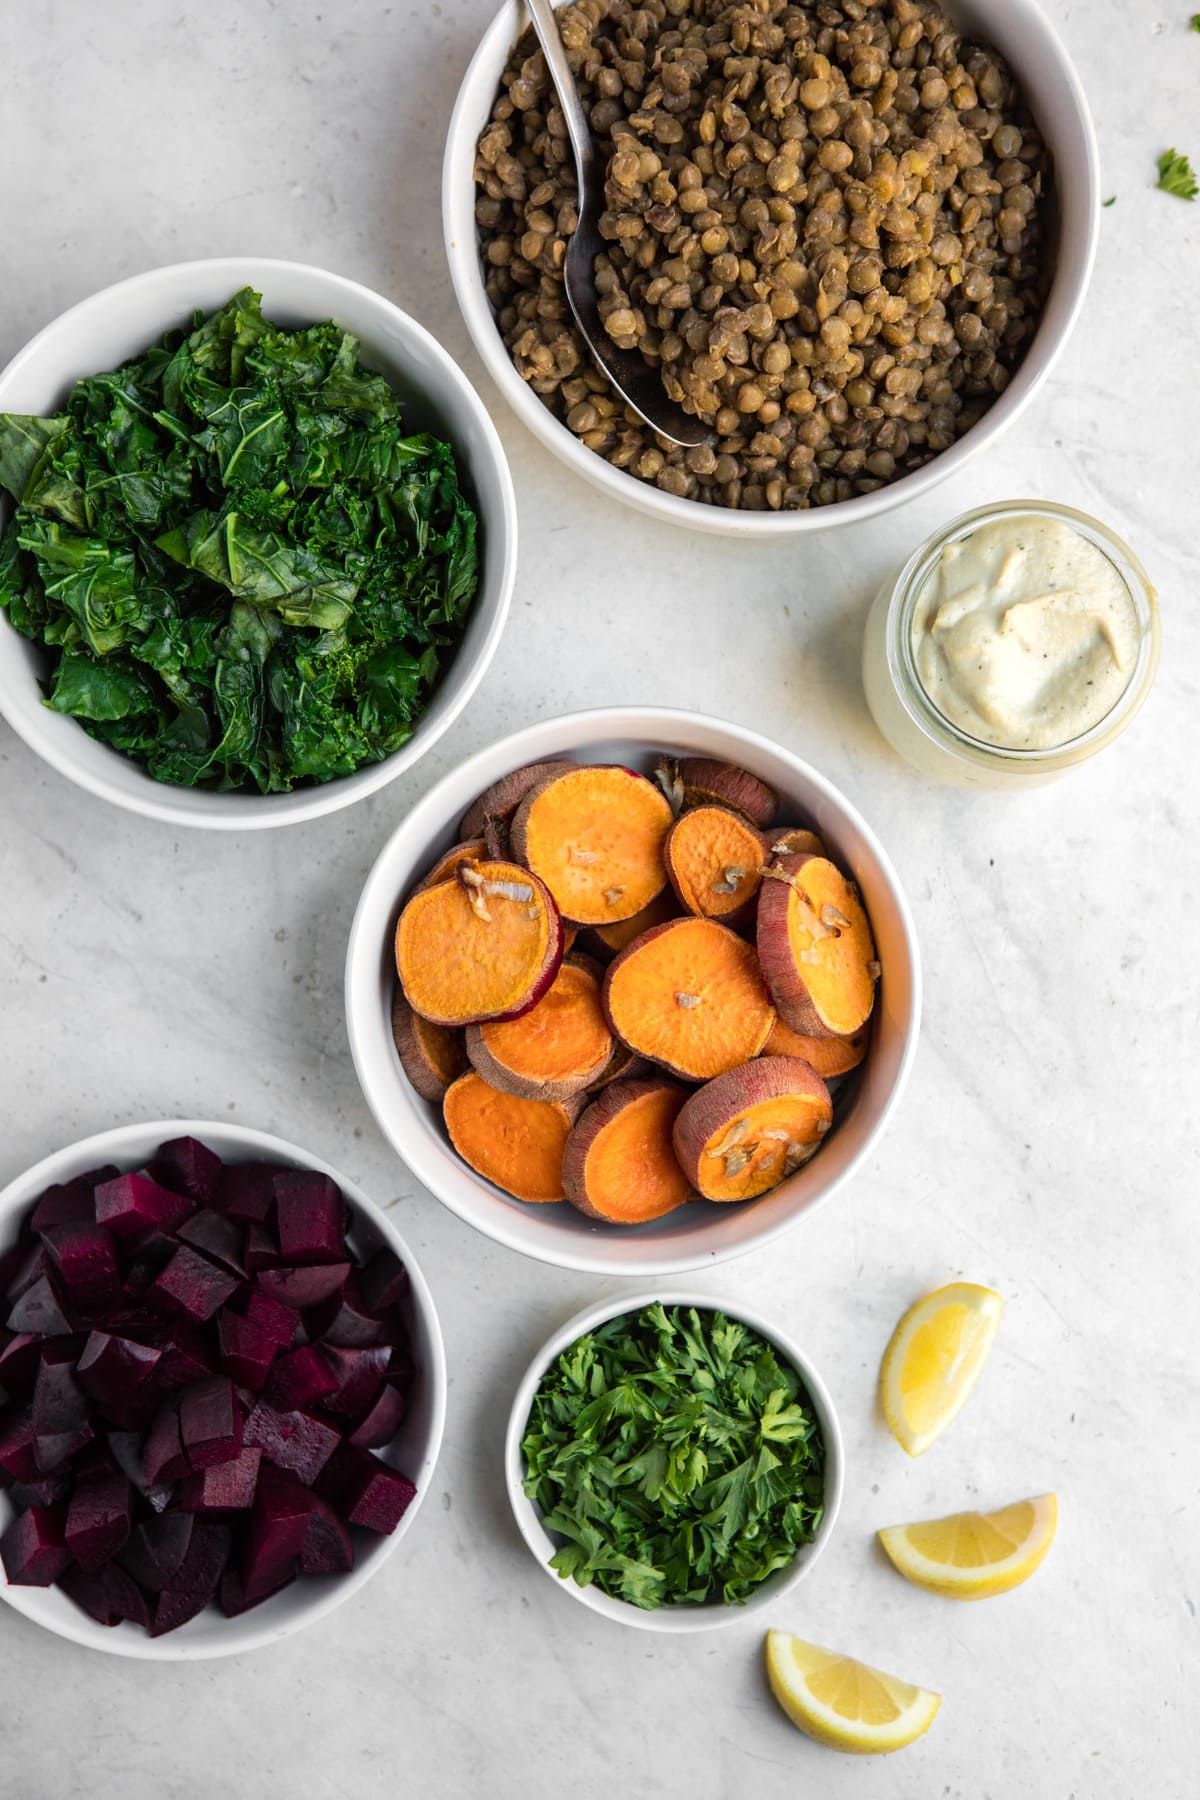 ingredients for warm lentil salad with roasted vegetables in white bowls on white marble background